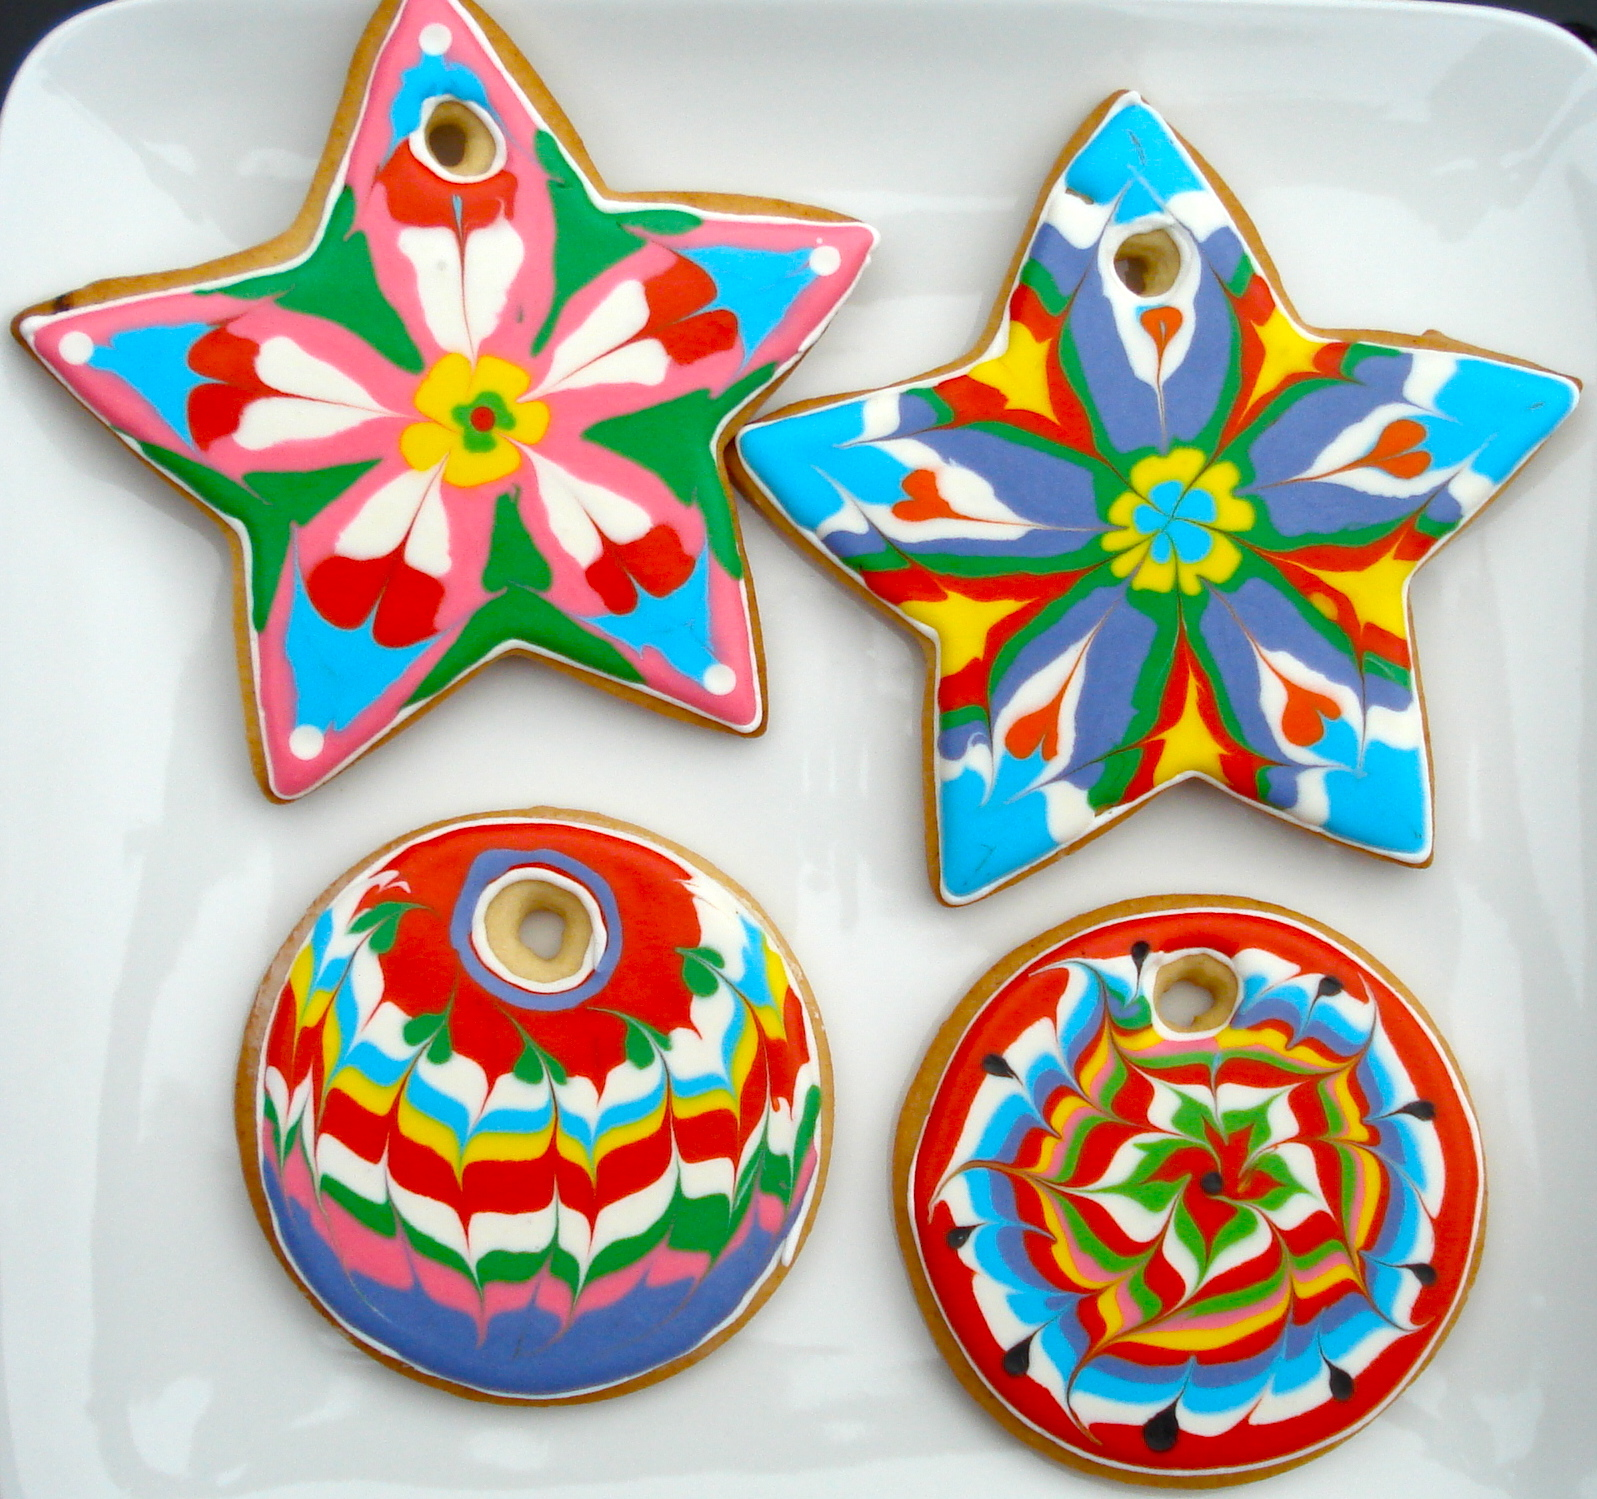 18 Gorgeously Decorated Cookies For Every Occasion. Wine Bar Decor. Cheap Rooms In Miami. Rooms In Miami. Cocktail Table Decor. Vineyard Decor. Leather Waiting Room Chairs. Zinc Dining Room Table. Unique Living Room Sets